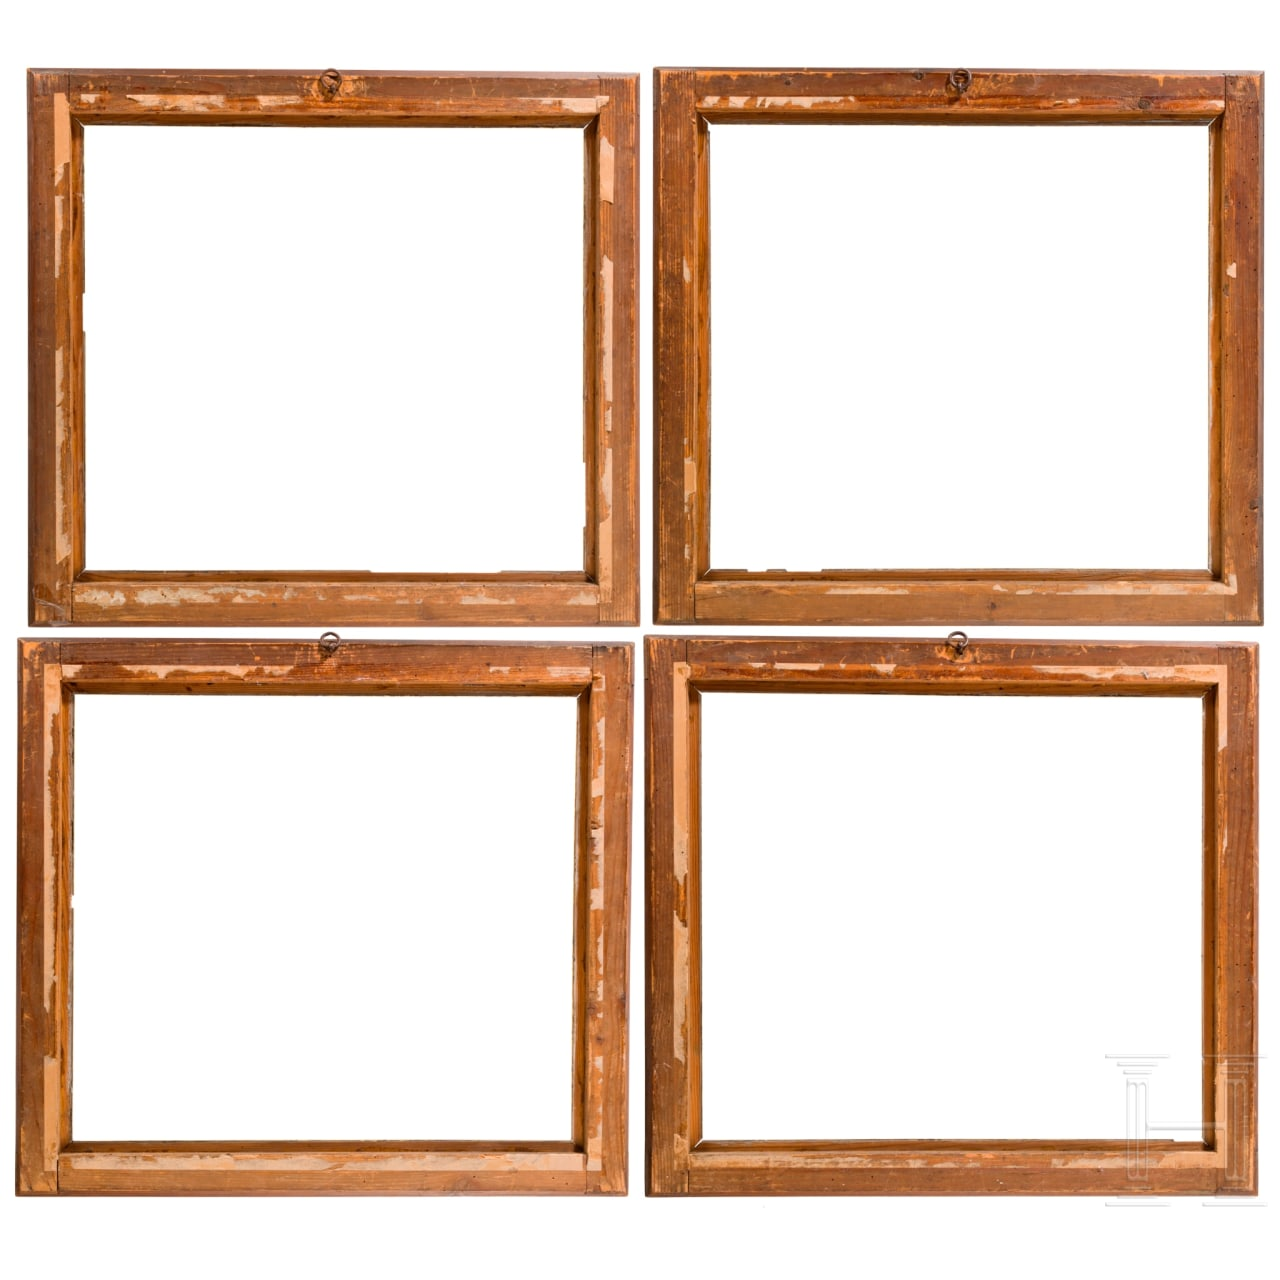 A set of four probably German neo-classical frames, 19th century